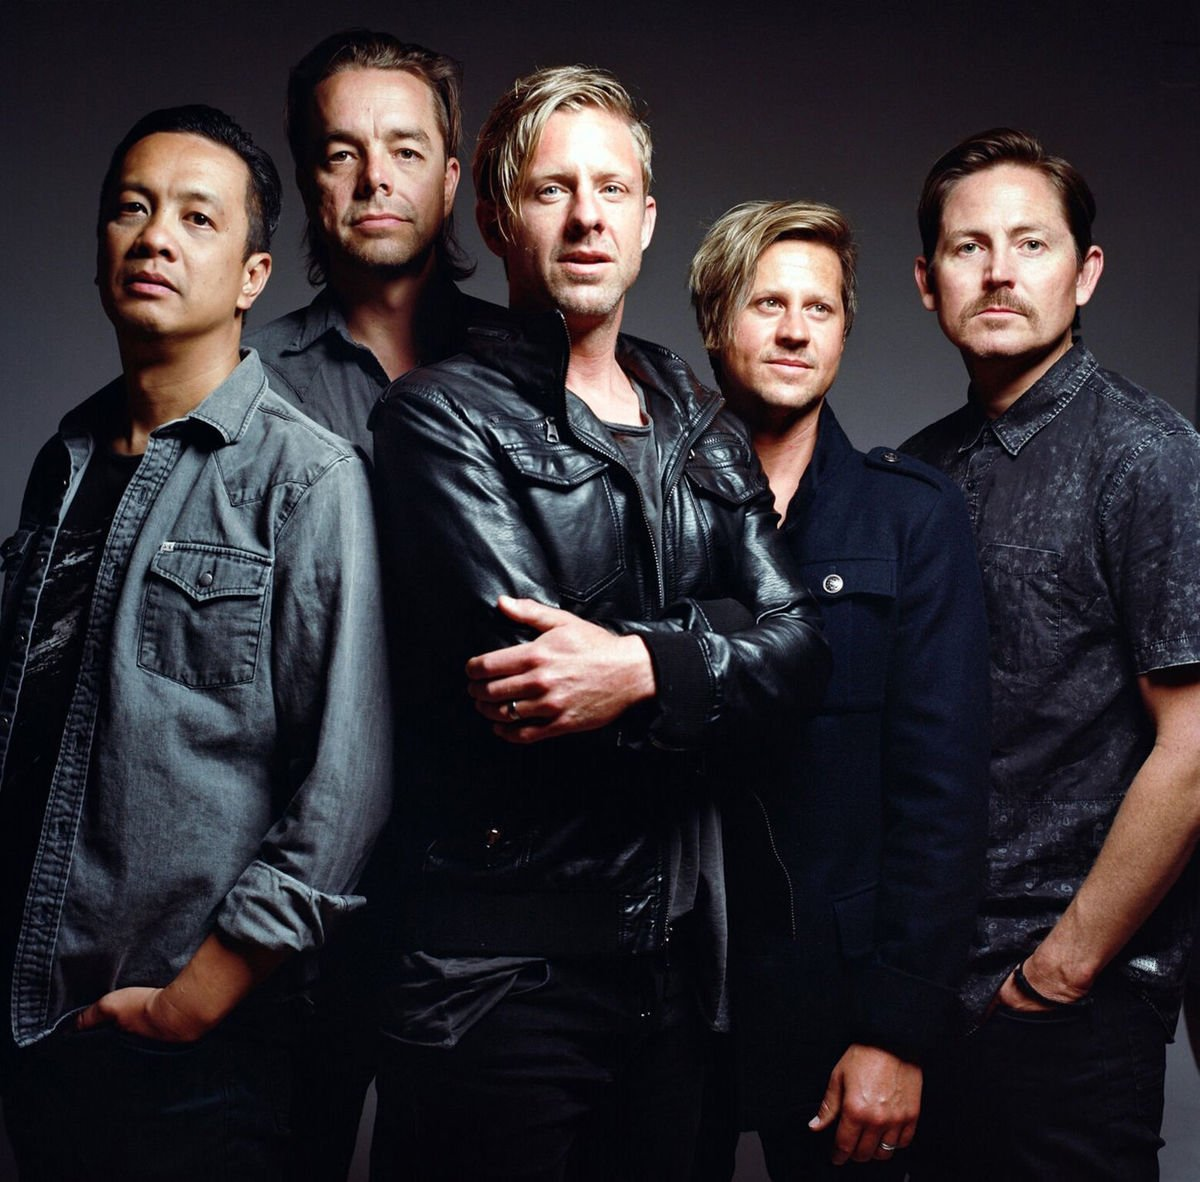 Native Tongue Switchfoot: Switchfoot - Monday, June 19, 2017, 9:30 A.m.